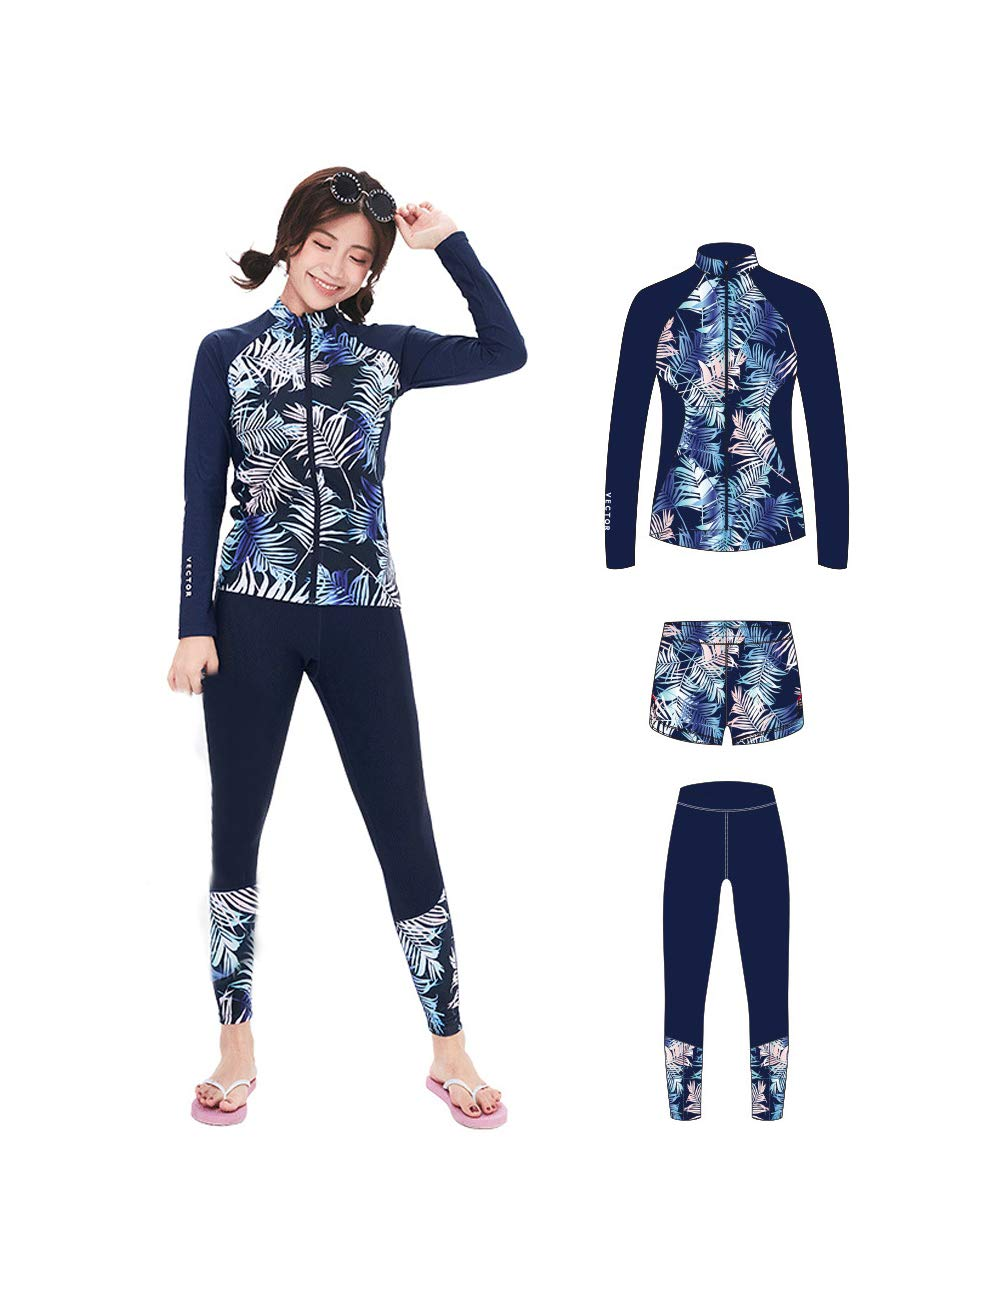 VECTOR 3 Pcs Women's Wetsuit Long Sleeve Swimsuit Watersports Diving Suits Snorkeling Swimming Sun Protection(D-Cardigan,M) by VECTOR